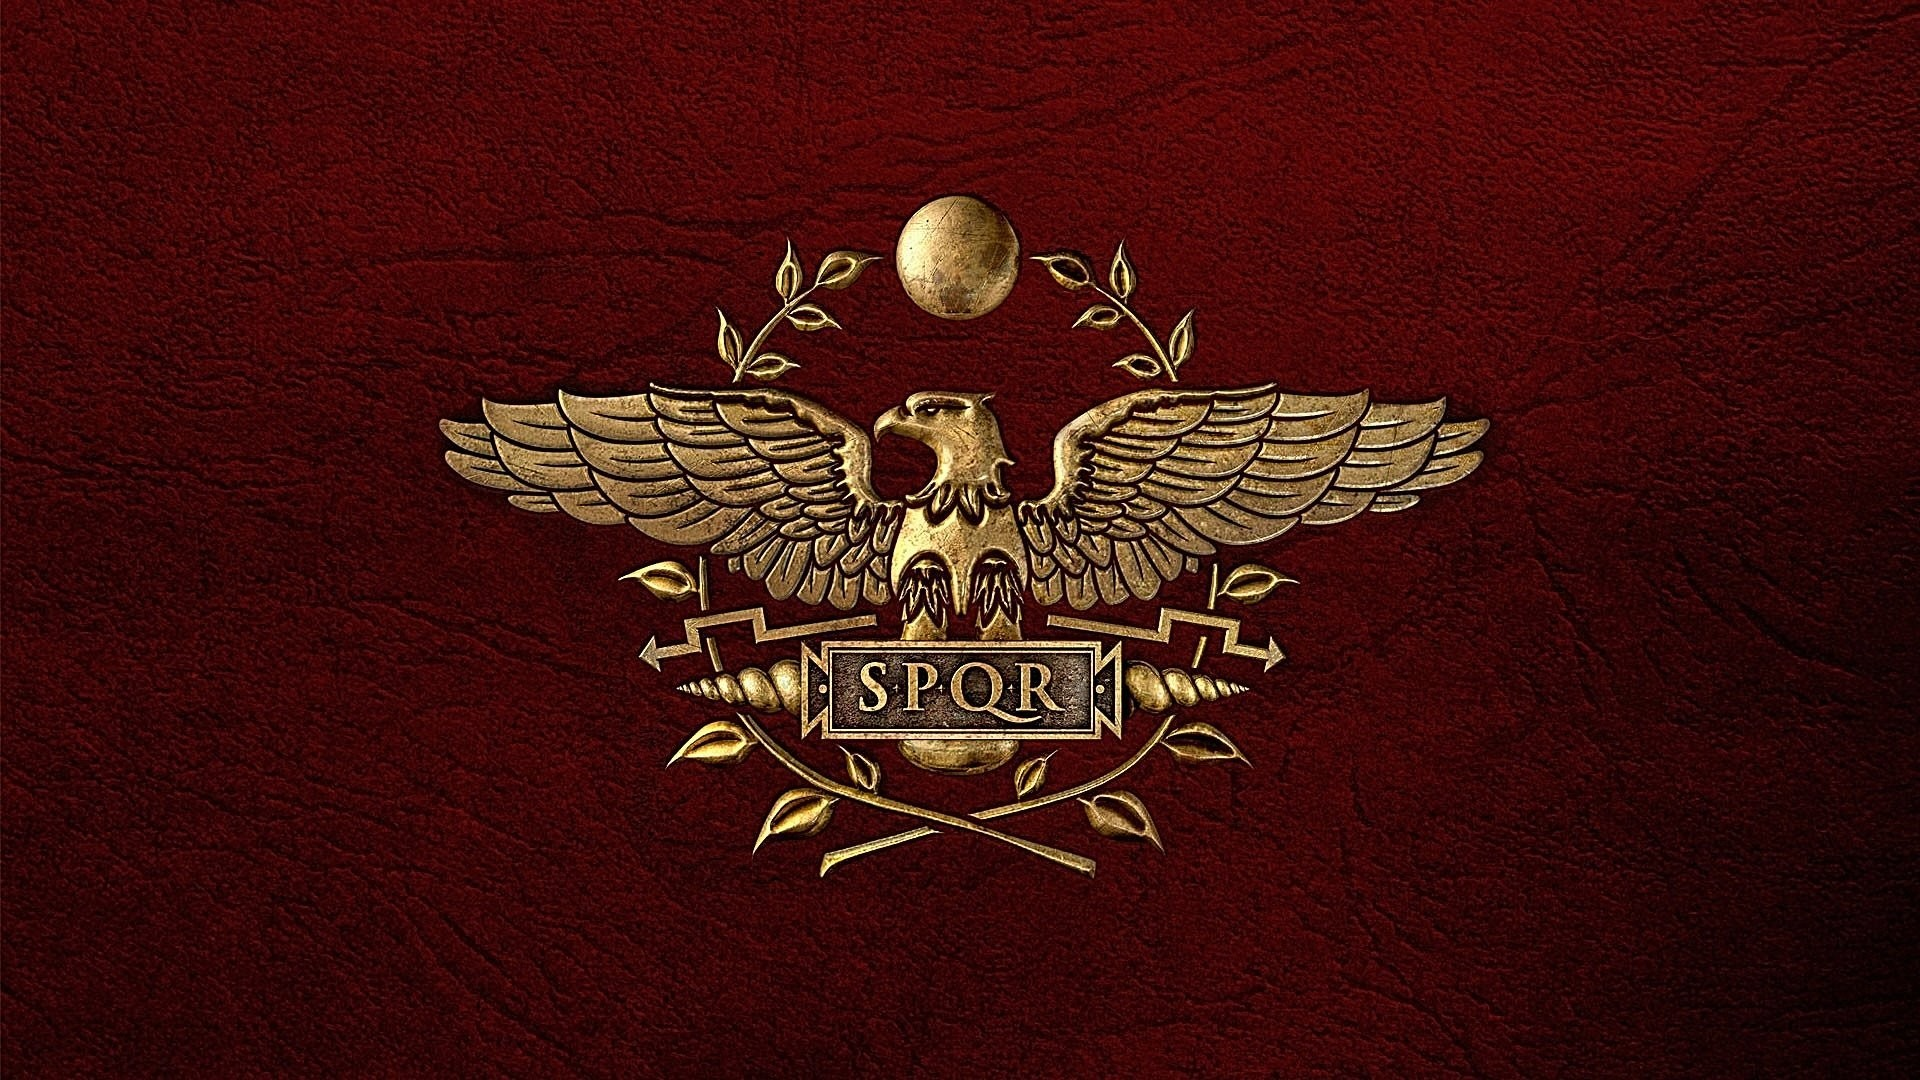 coat of arms symbol rome roman empire red background leather